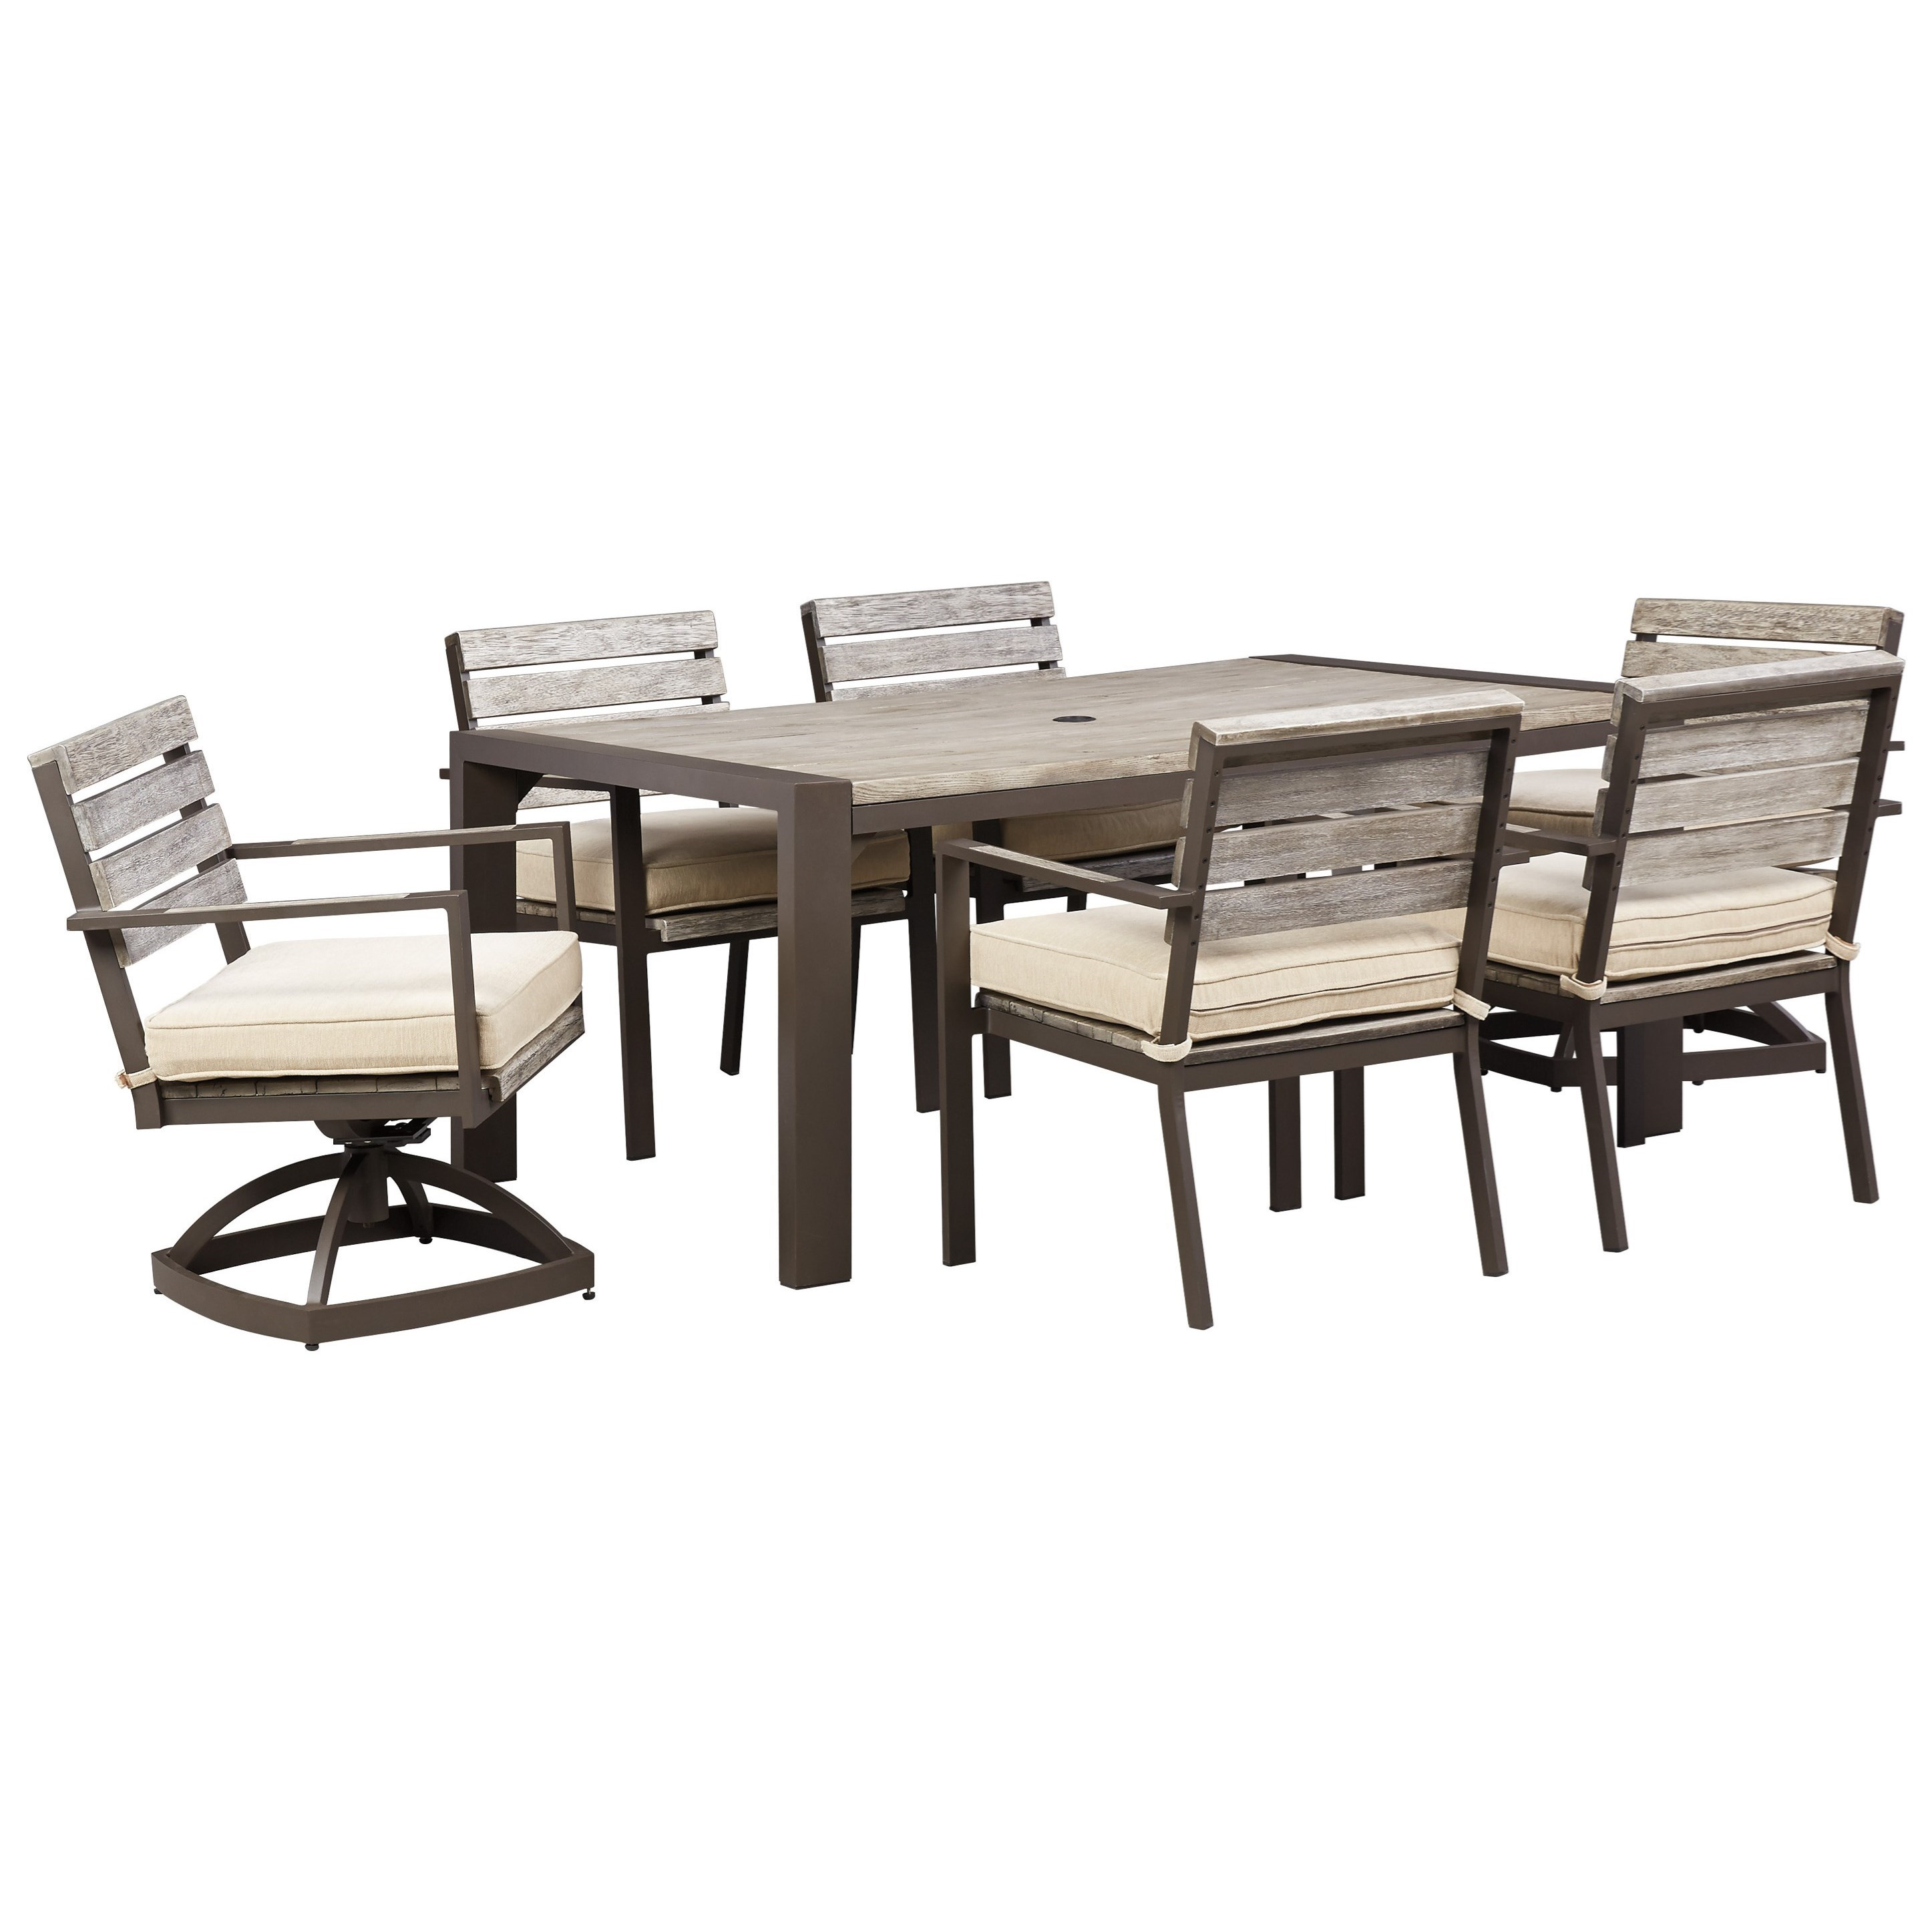 Beautiful Patio Dining Table and Chairs